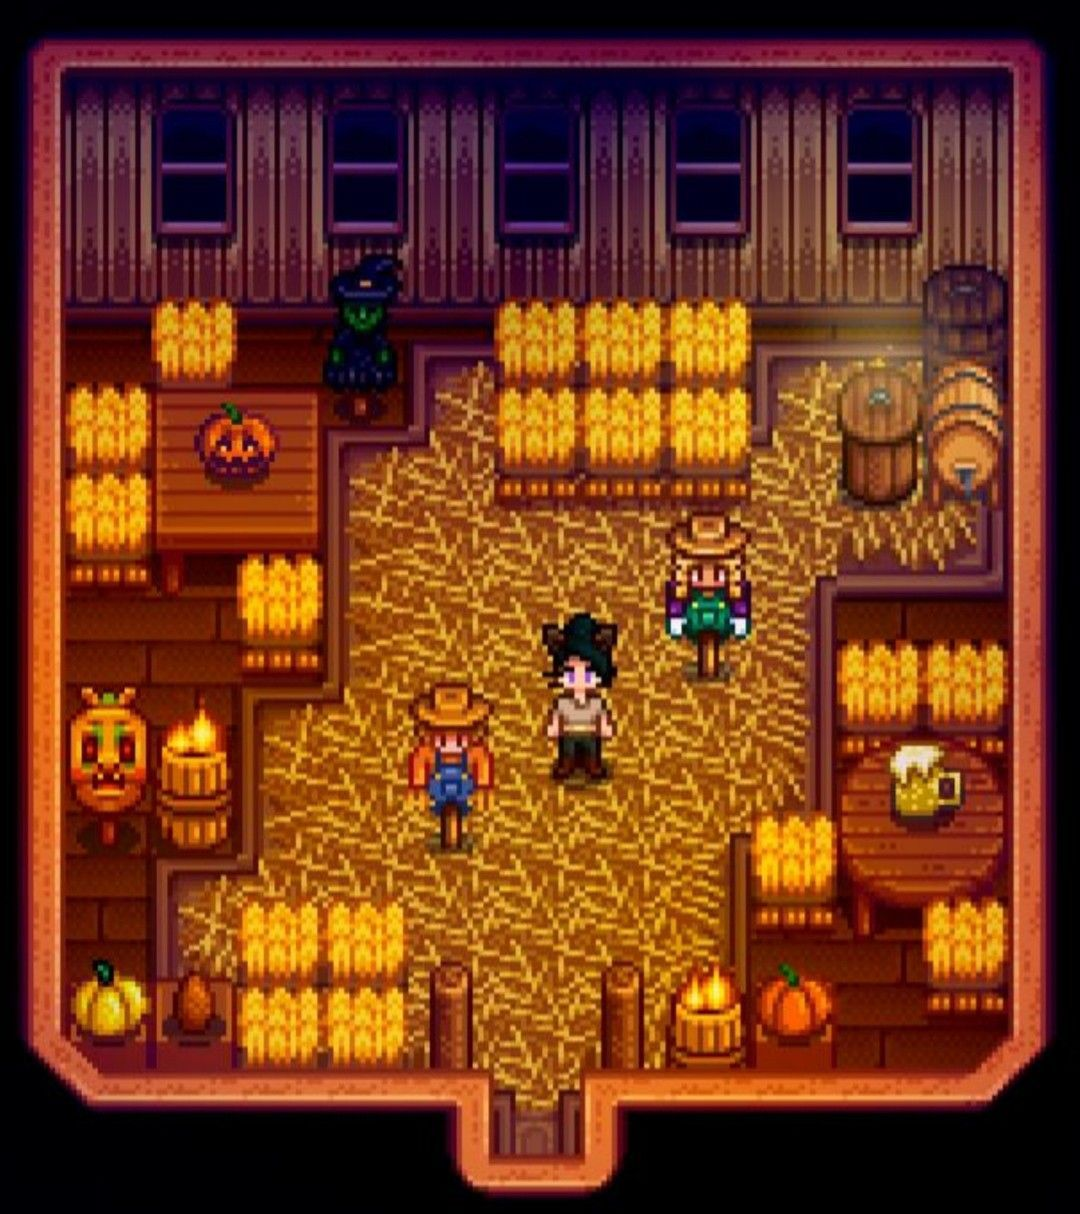 Barnyard bash  estardew valley  eshed design layout  espirit   eve  eby ladyamalthea also best stardew images in consoles gaming rh pinterest